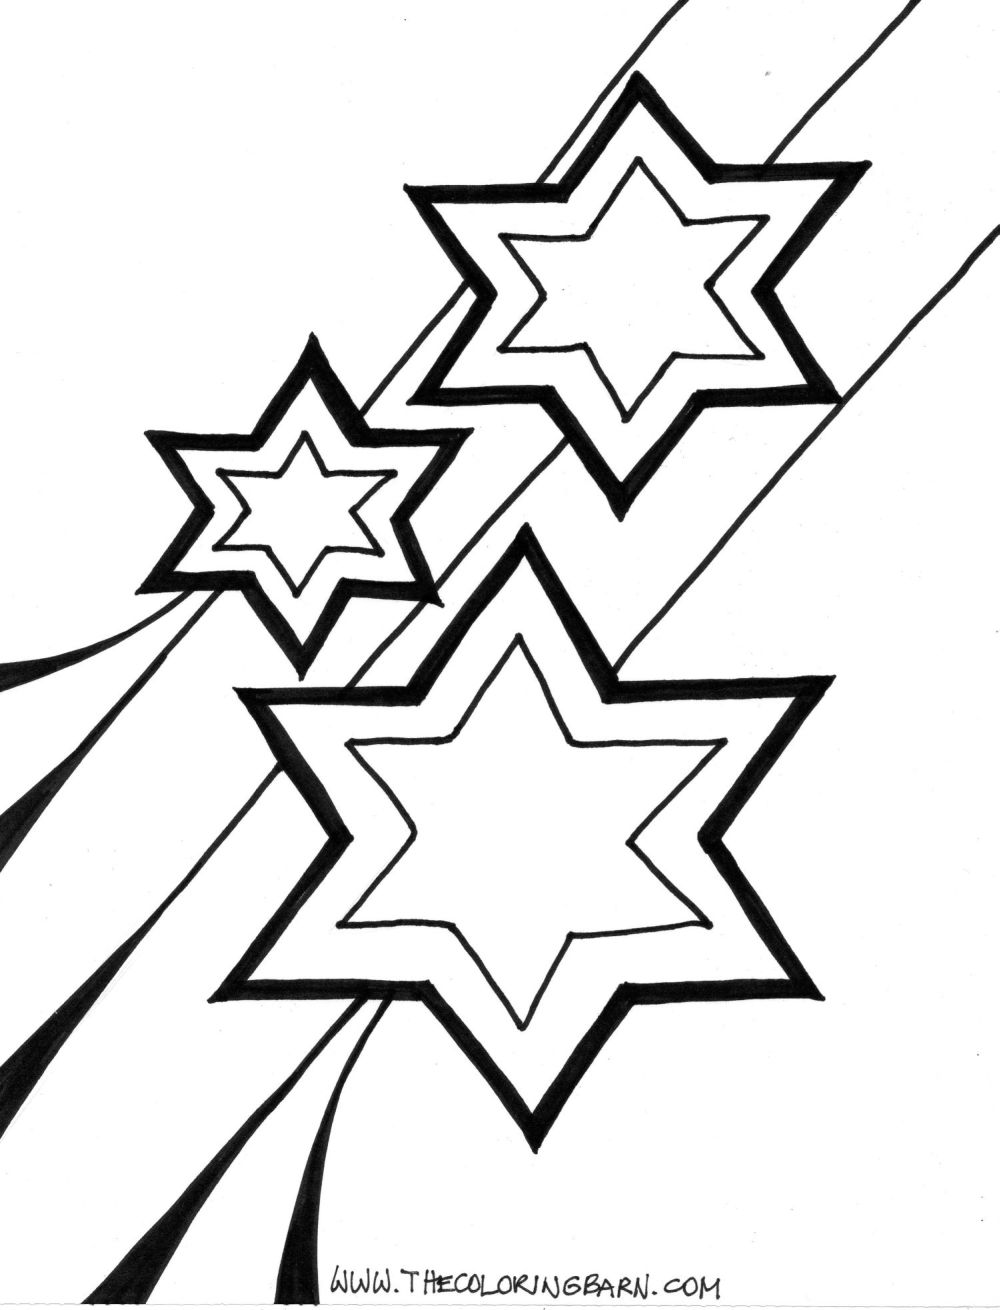 colouring pages stars free printable star coloring pages colouring pages stars